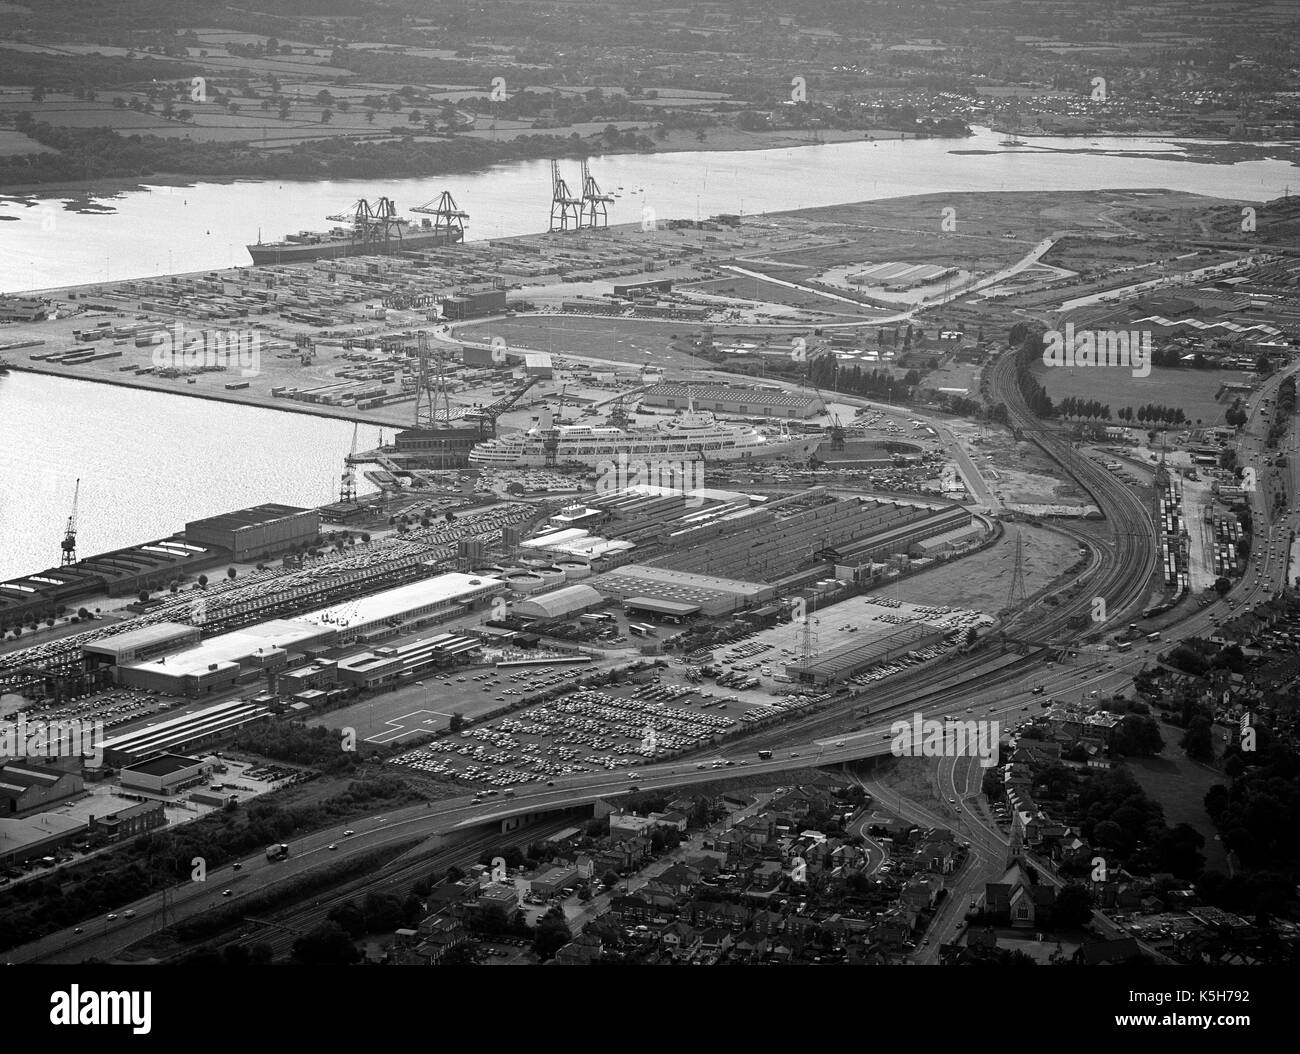 Aerial view of the New Docks and container docks of the Port Of Southampton including SS Canberra in the King George V graving dock, Southampton, Hampshire, England, UK - Stock Image